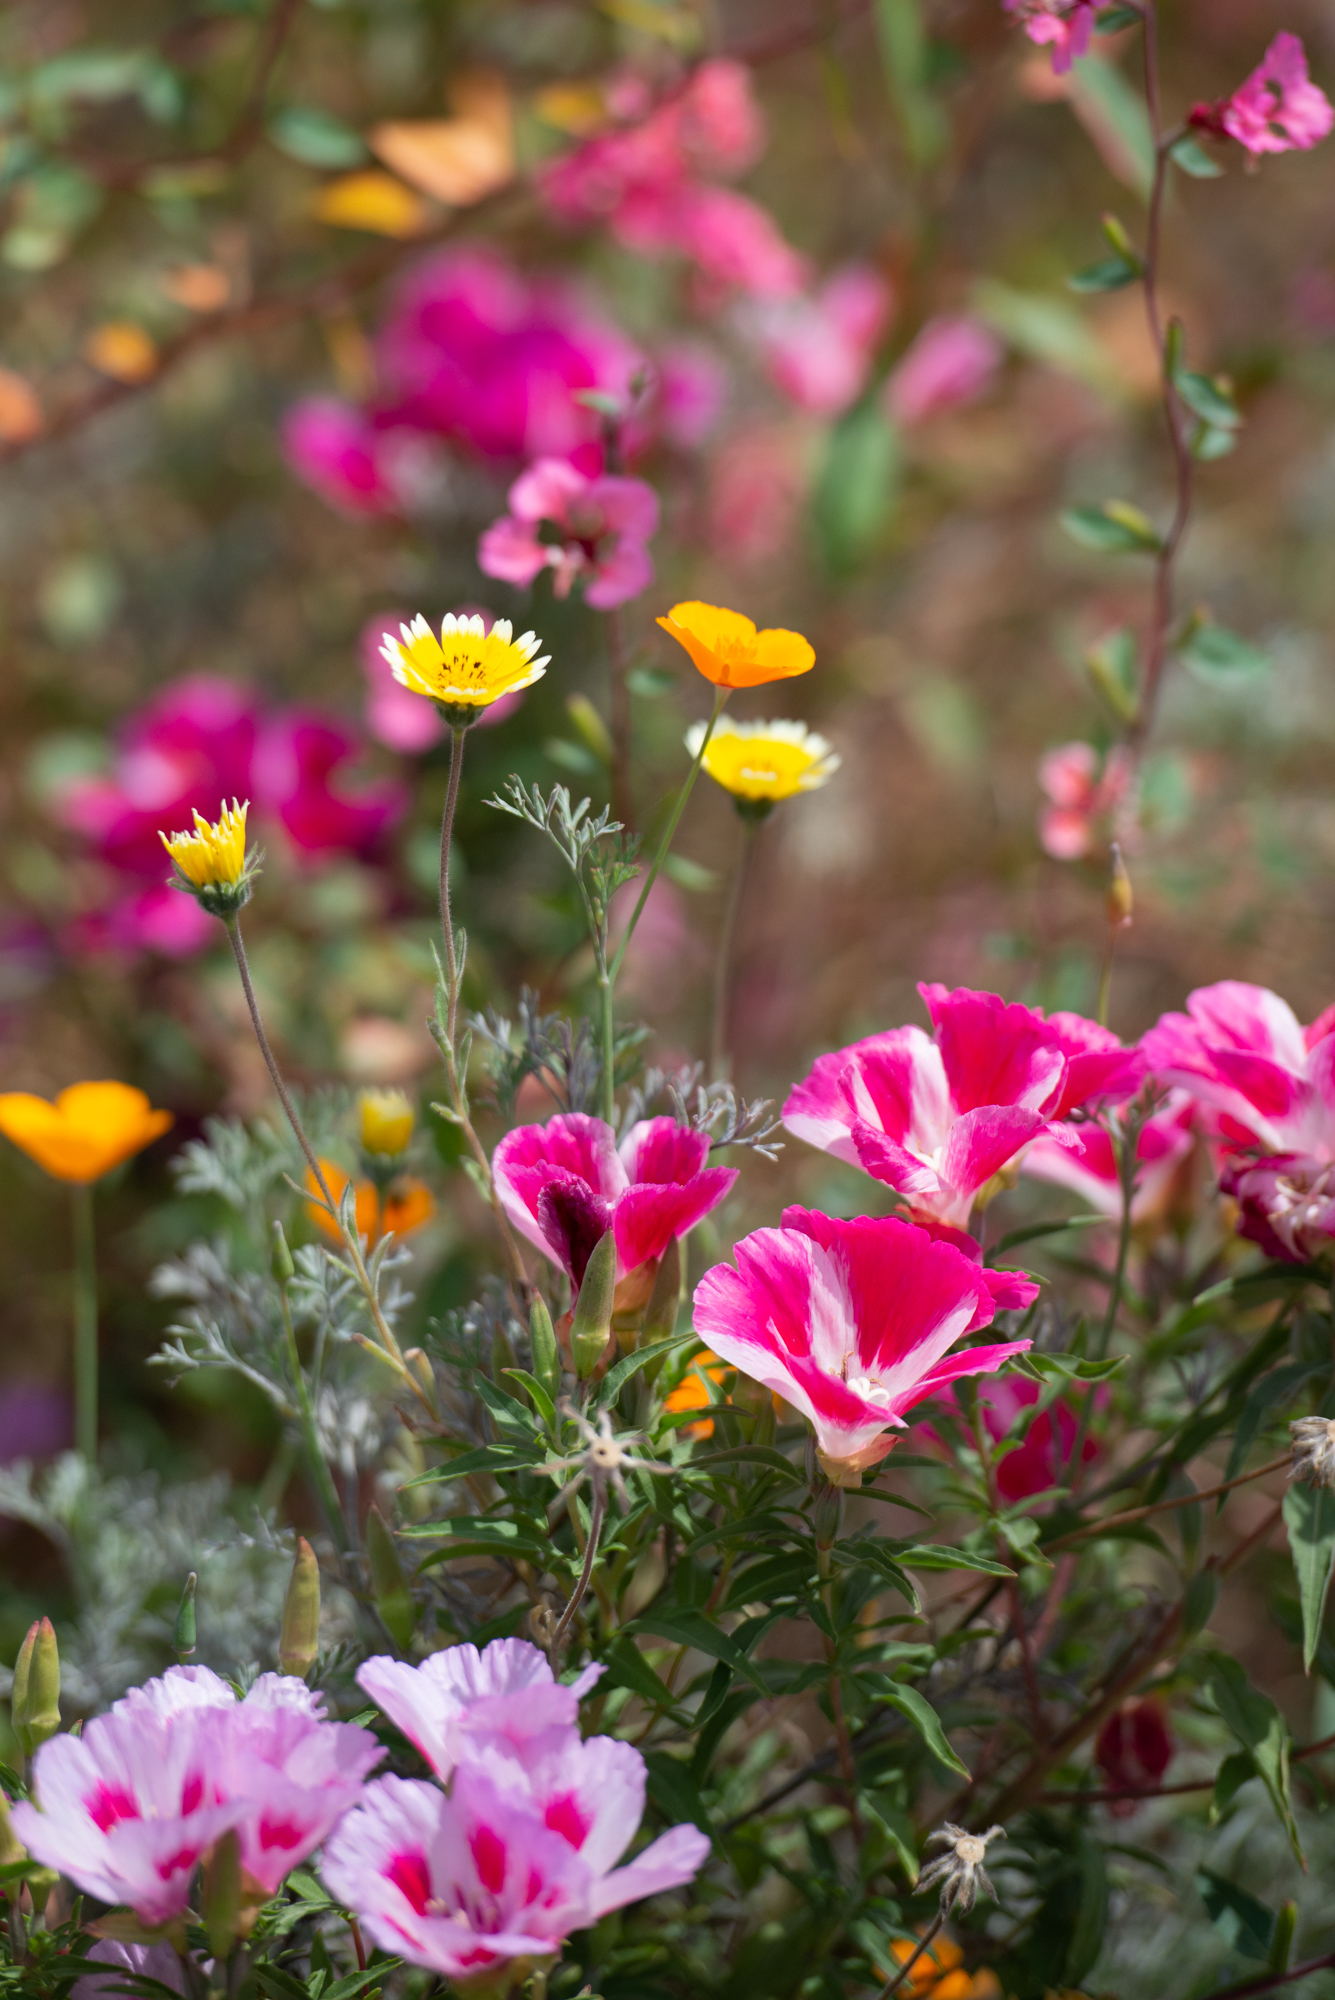 Clarkia, California Poppies, Tidy-Tips border the Parking Strip Vegetable Beds